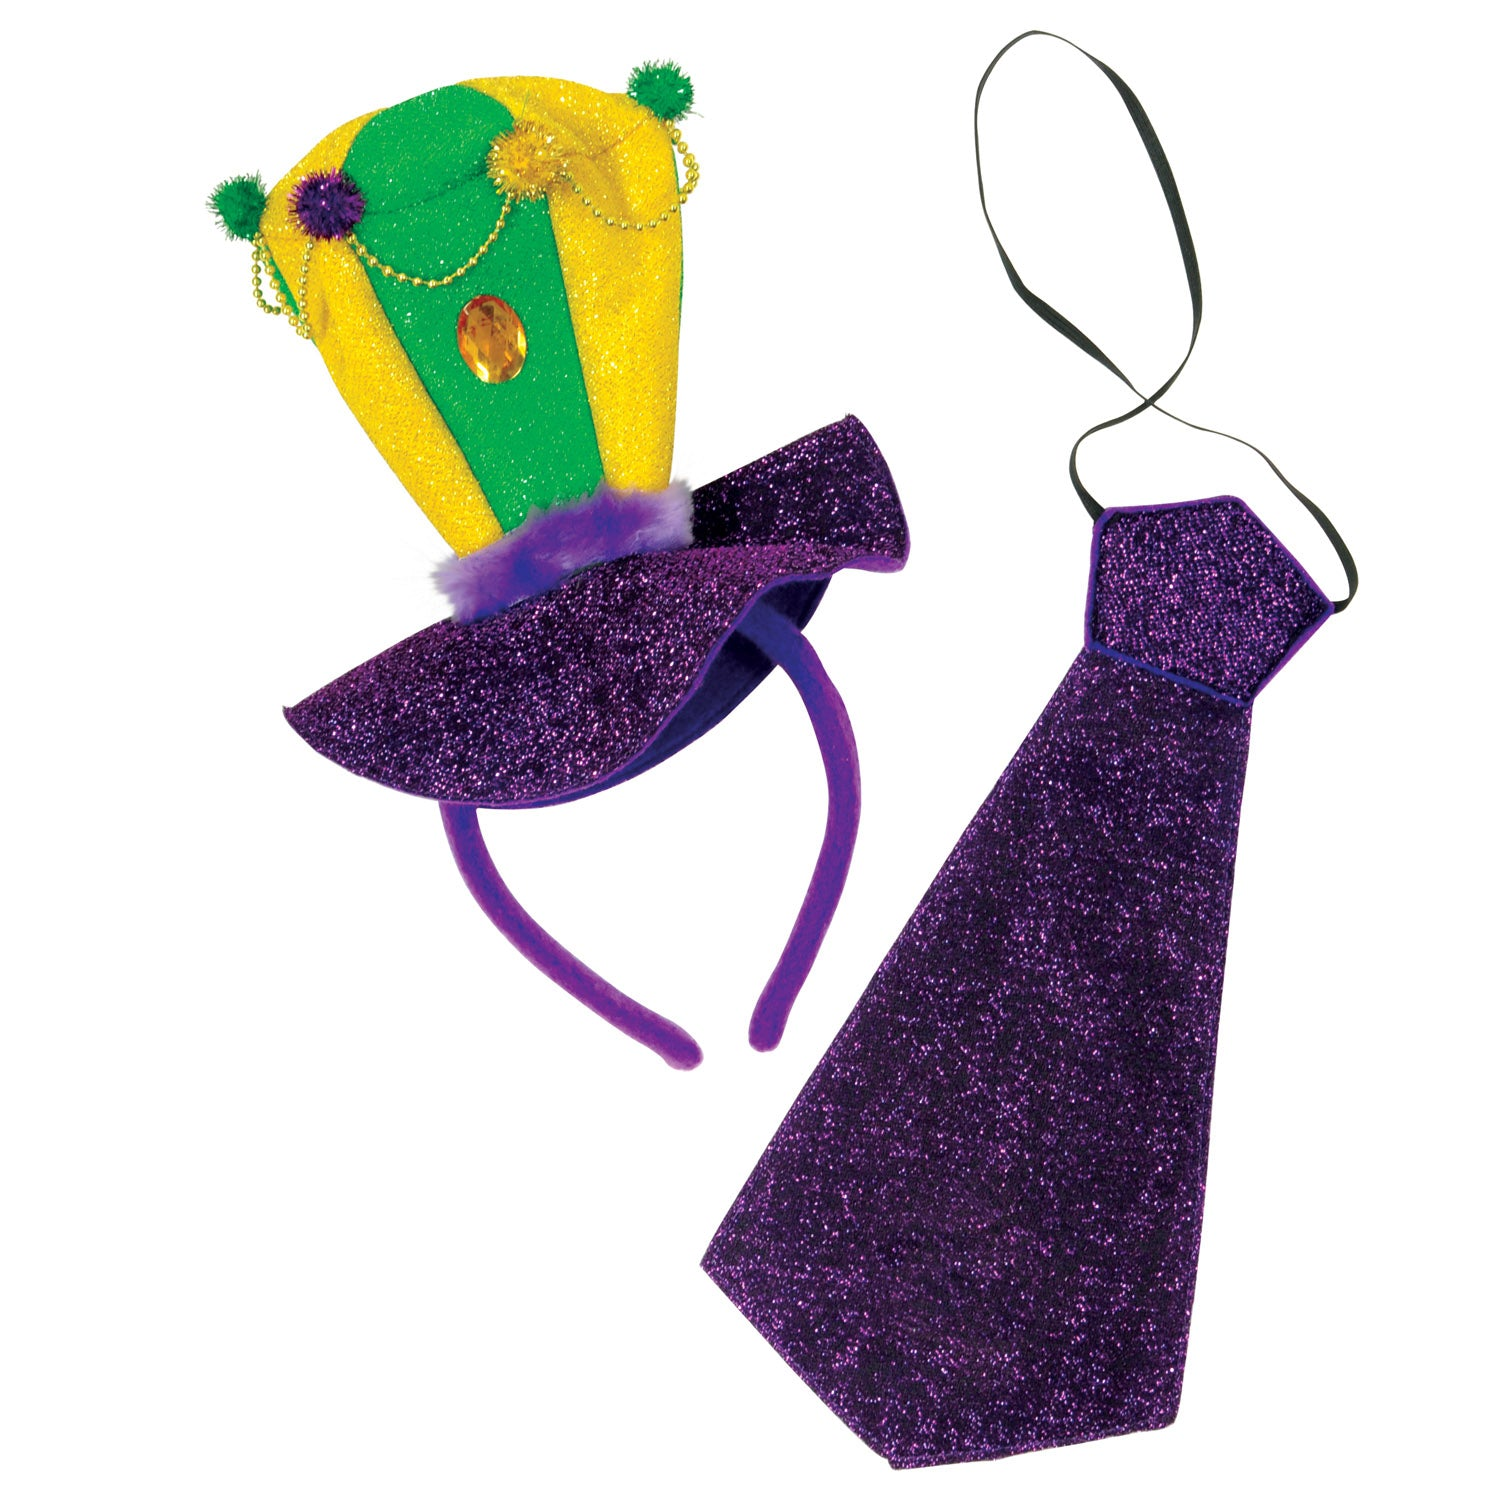 Mardi Gras Headband & Necktie Set by Beistle - Mardi Gras Theme Decorations